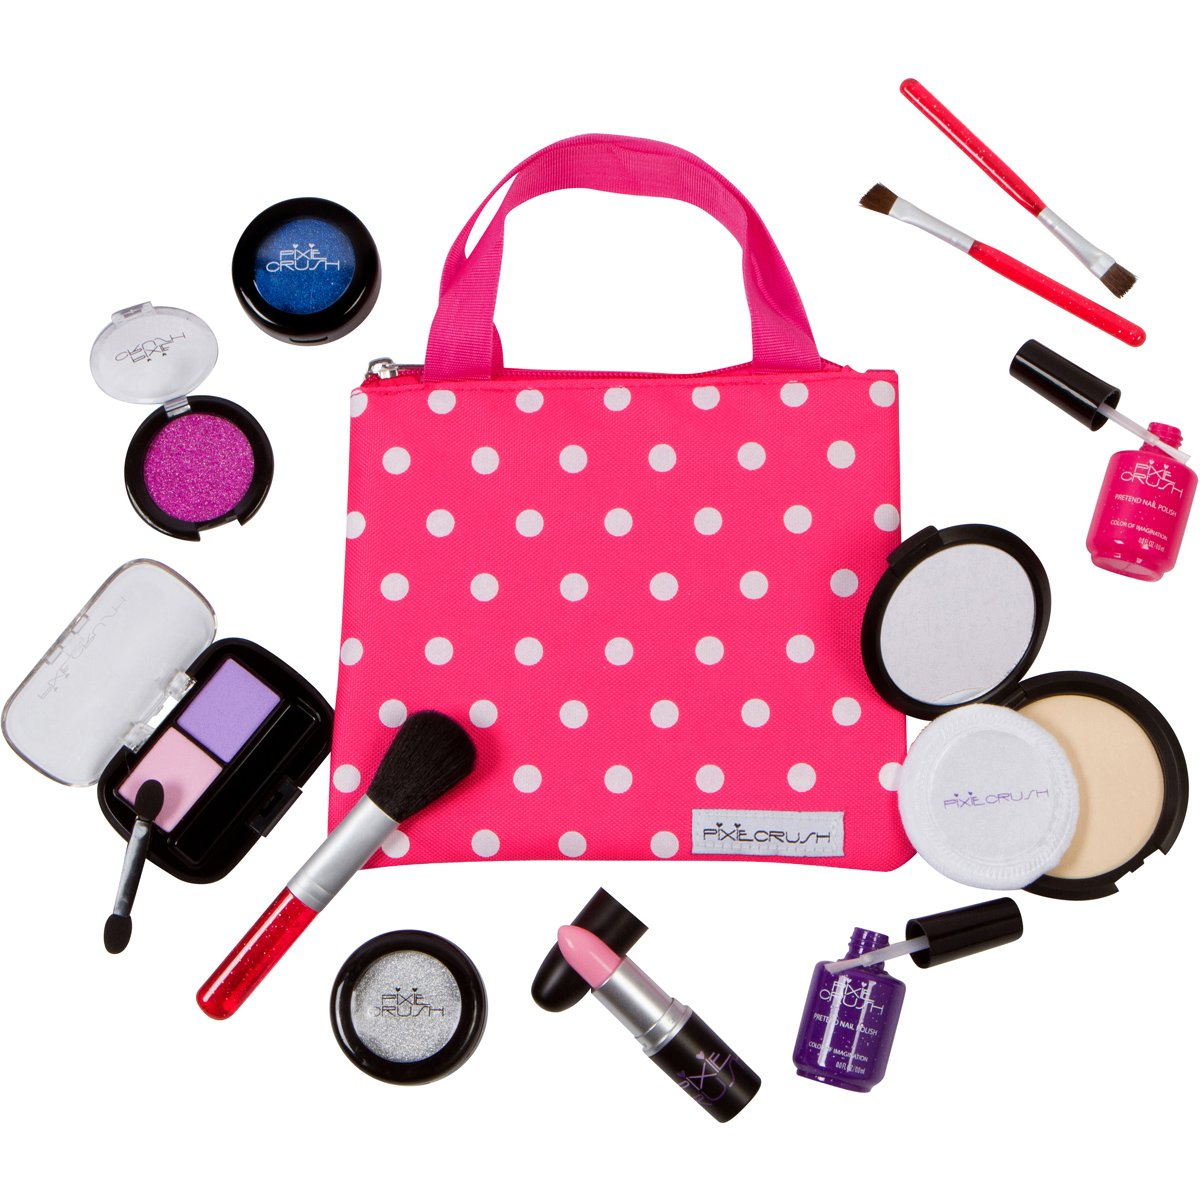 PixieCrush Pretend Play Makeup Kit. Designer Girls Beauty Basics 12 Piece Polka Dot Handbag Set by PixieCrush